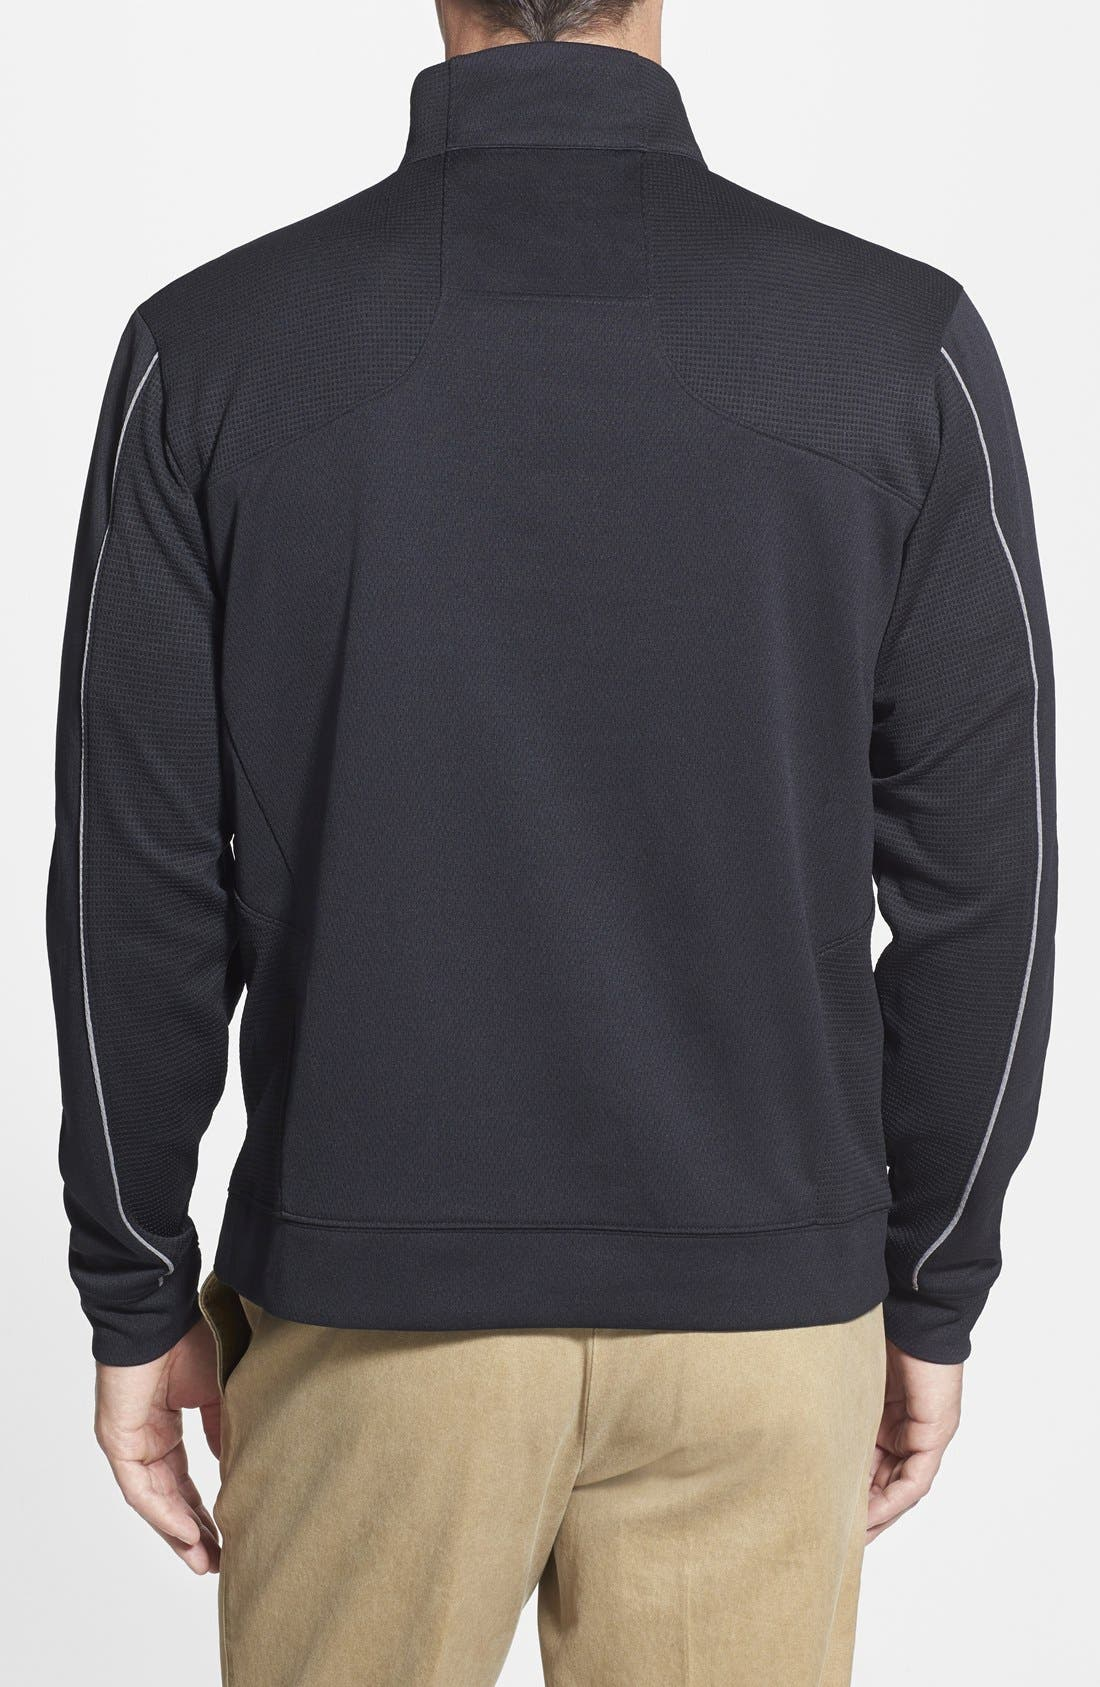 'Pittsburgh Steelers - Edge' DryTec Moisture Wicking Half Zip Pullover,                             Alternate thumbnail 2, color,                             001